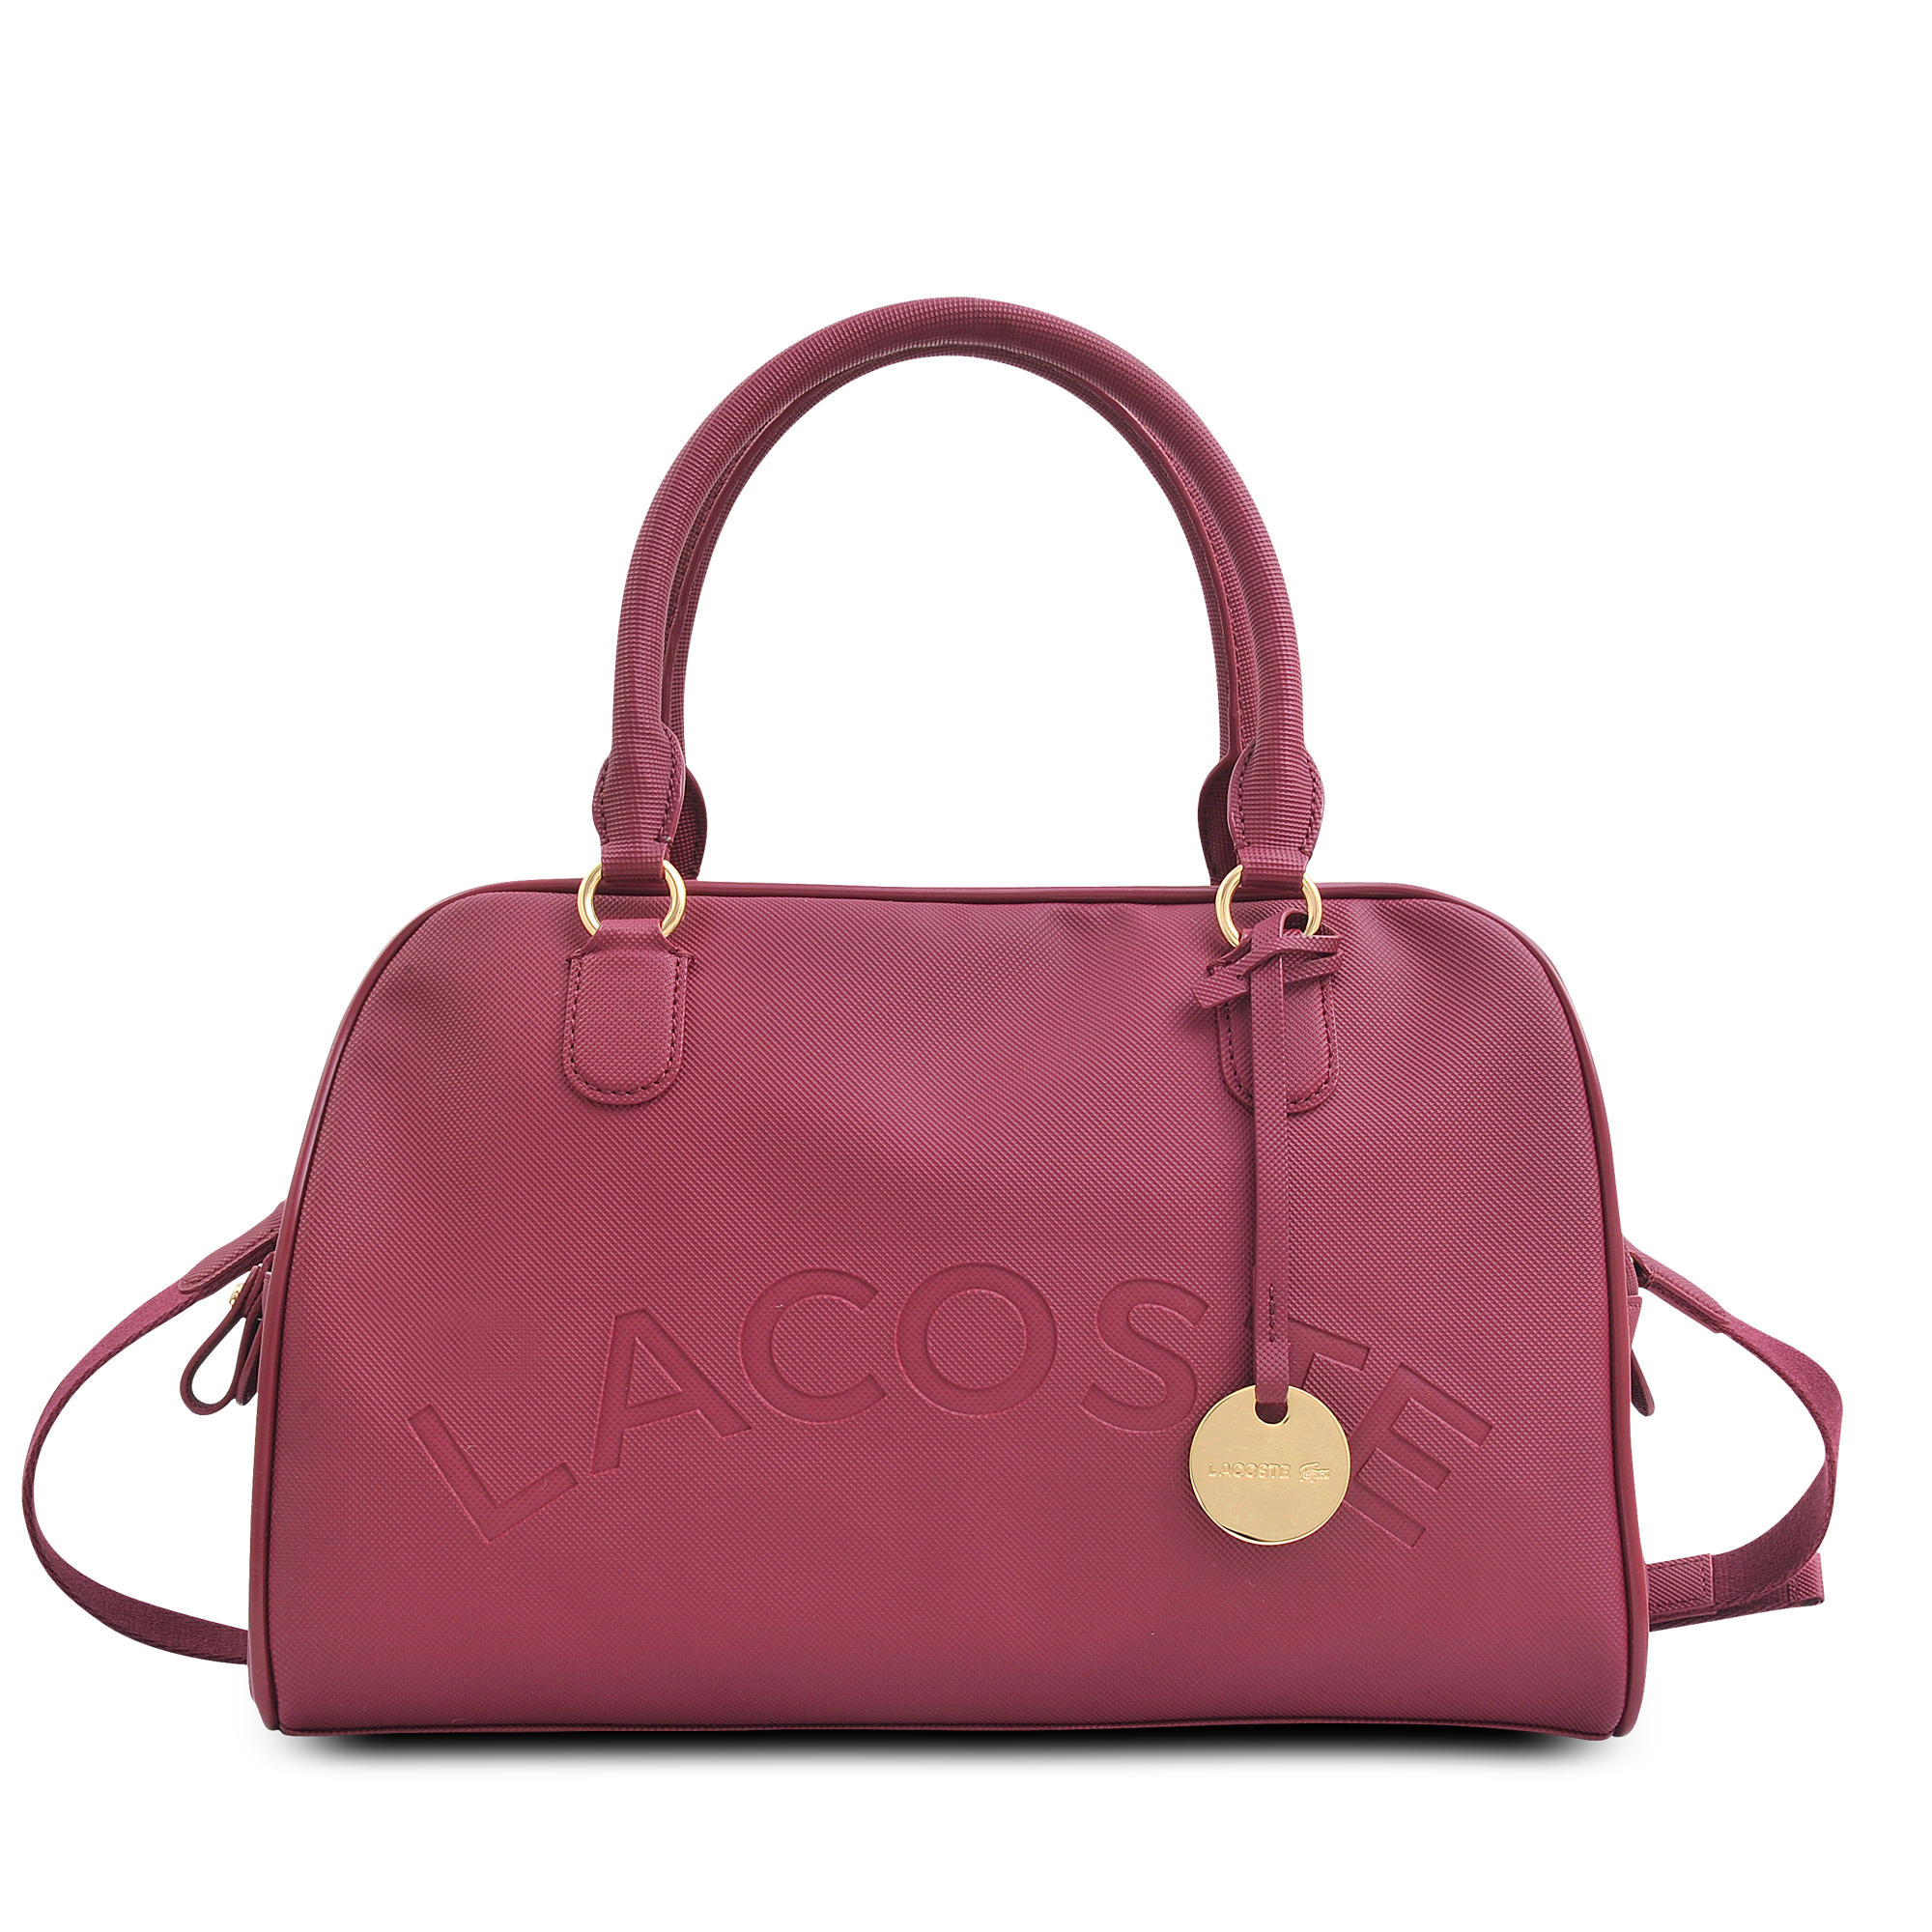 lacoste bags - photo #19